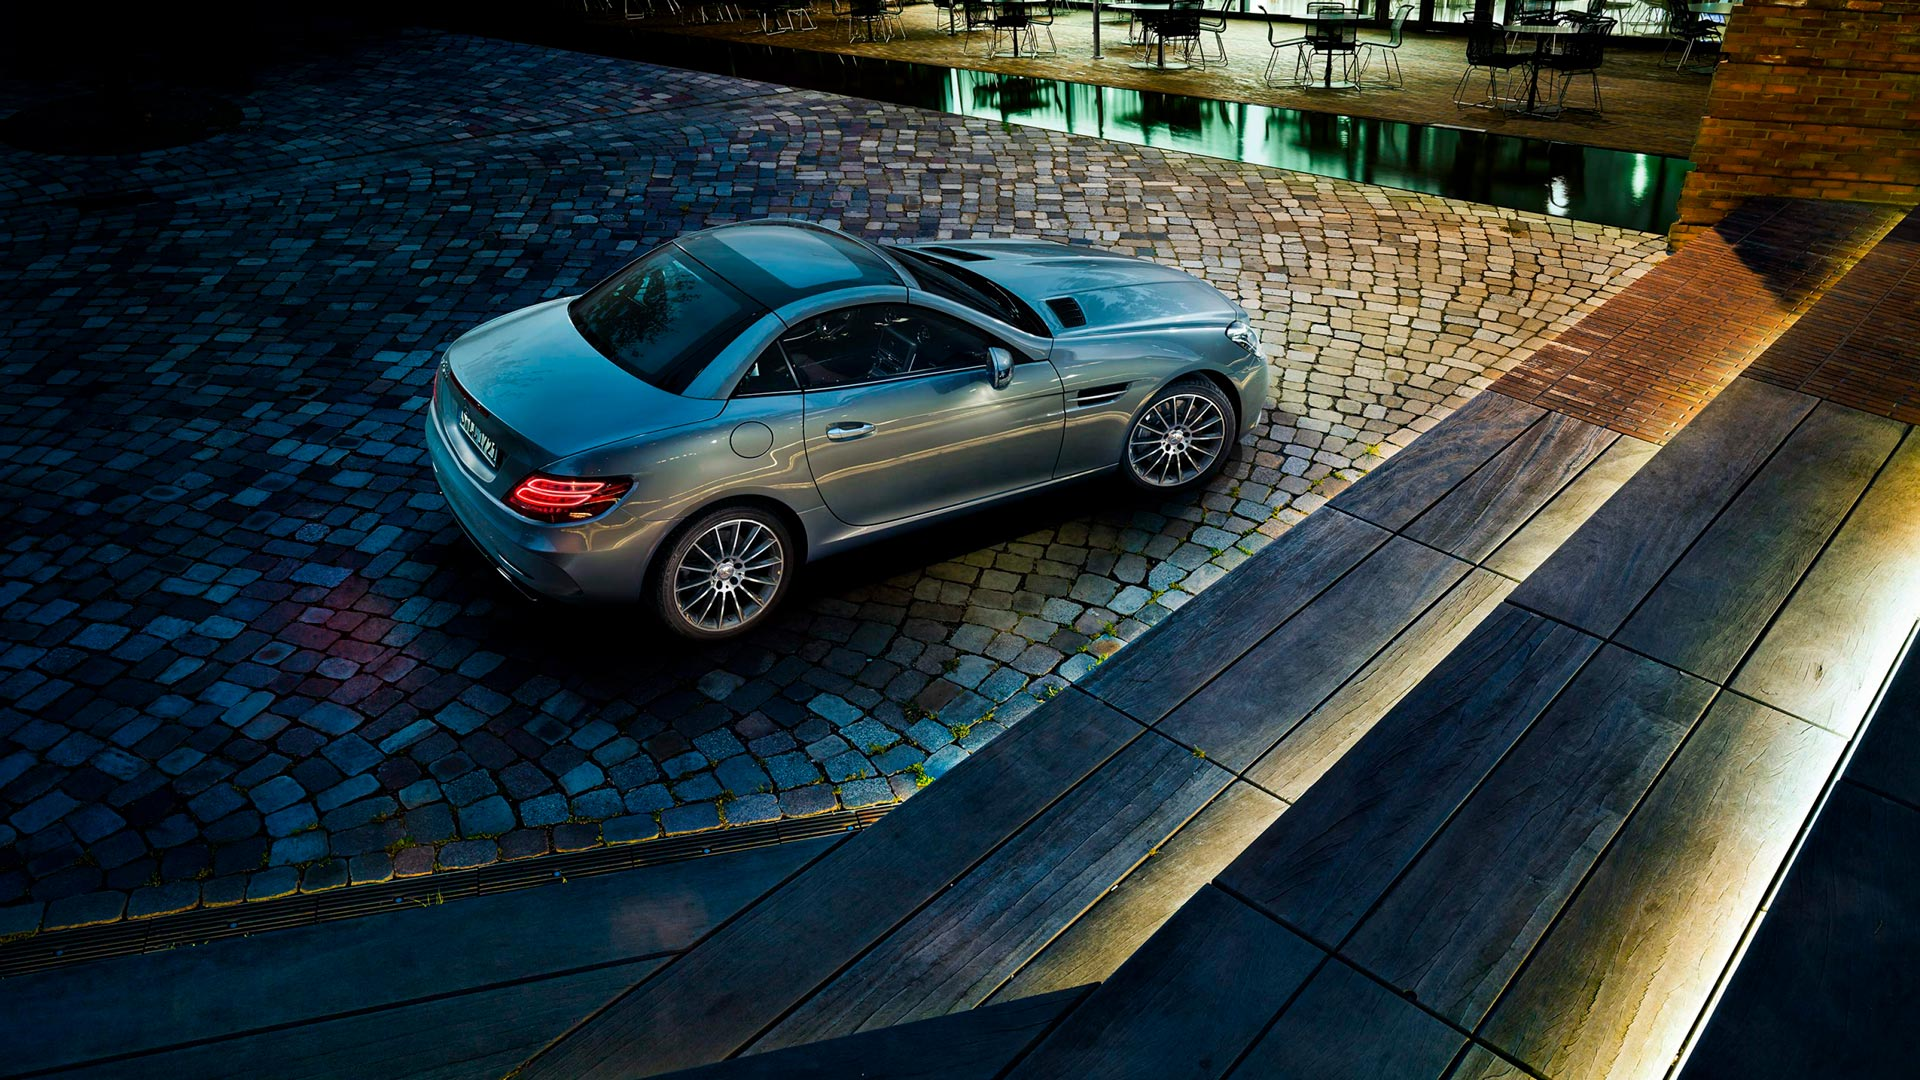 Новый Mercedes Benz SLC родстер панорамний дах